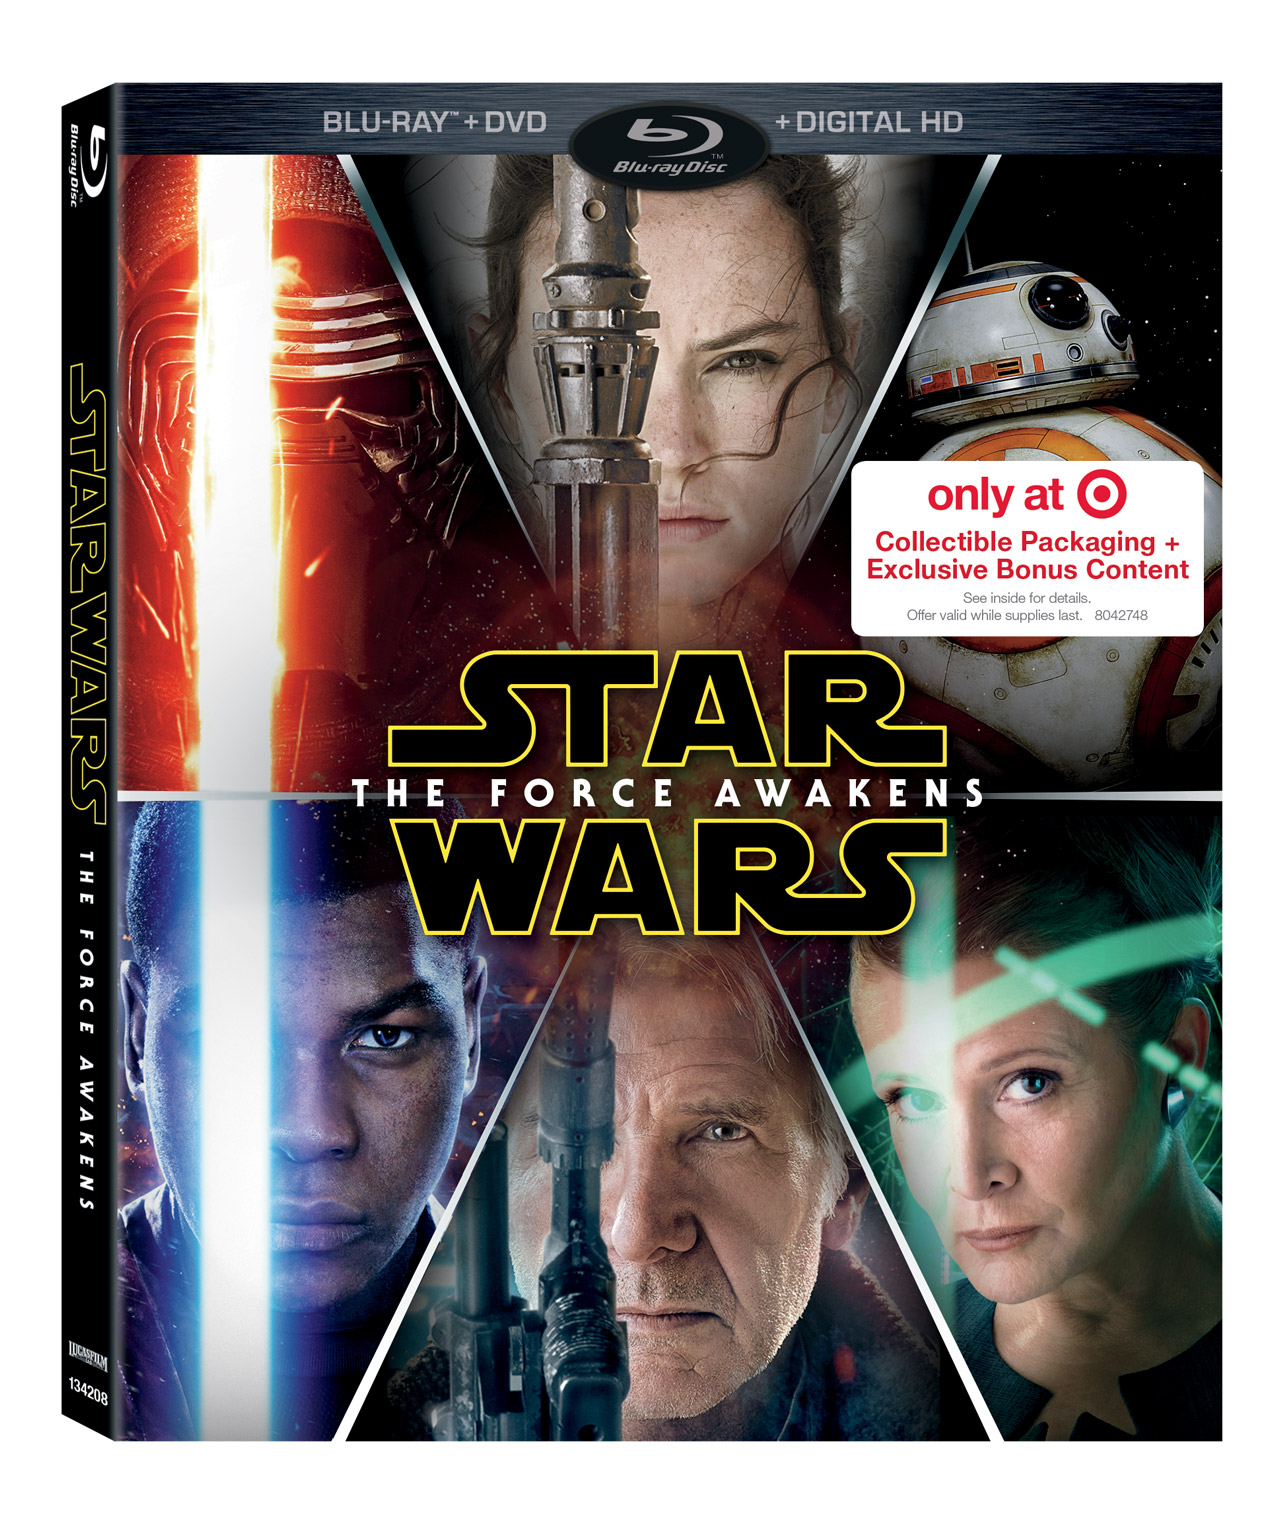 The Force Awakens combo release Target. Force Awakens Blu-Ray release set for early April